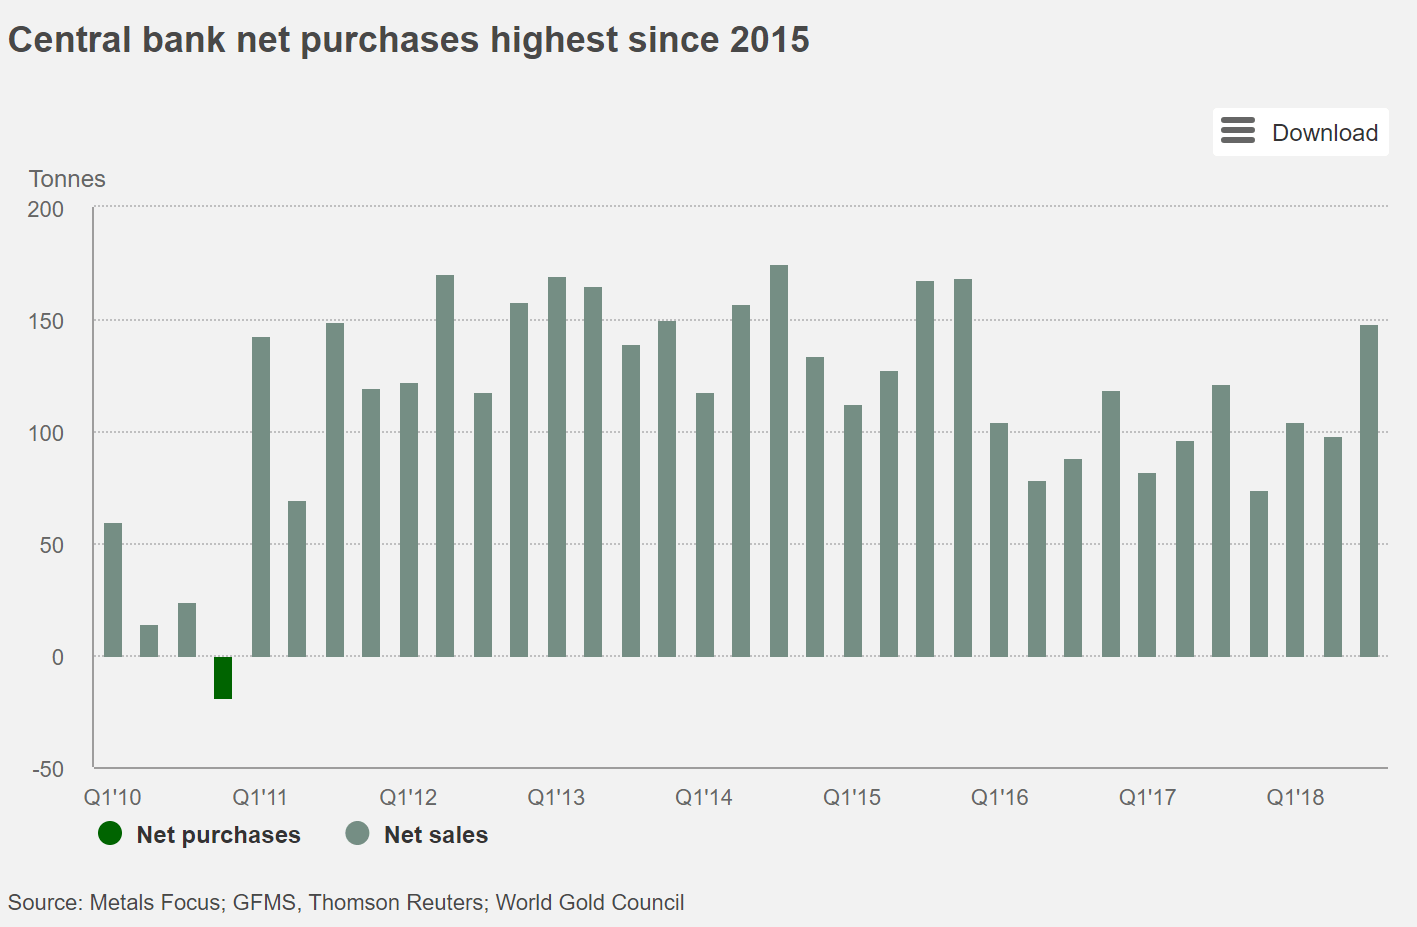 9-year bar chart of central bank net gold purchases, highest since 2015